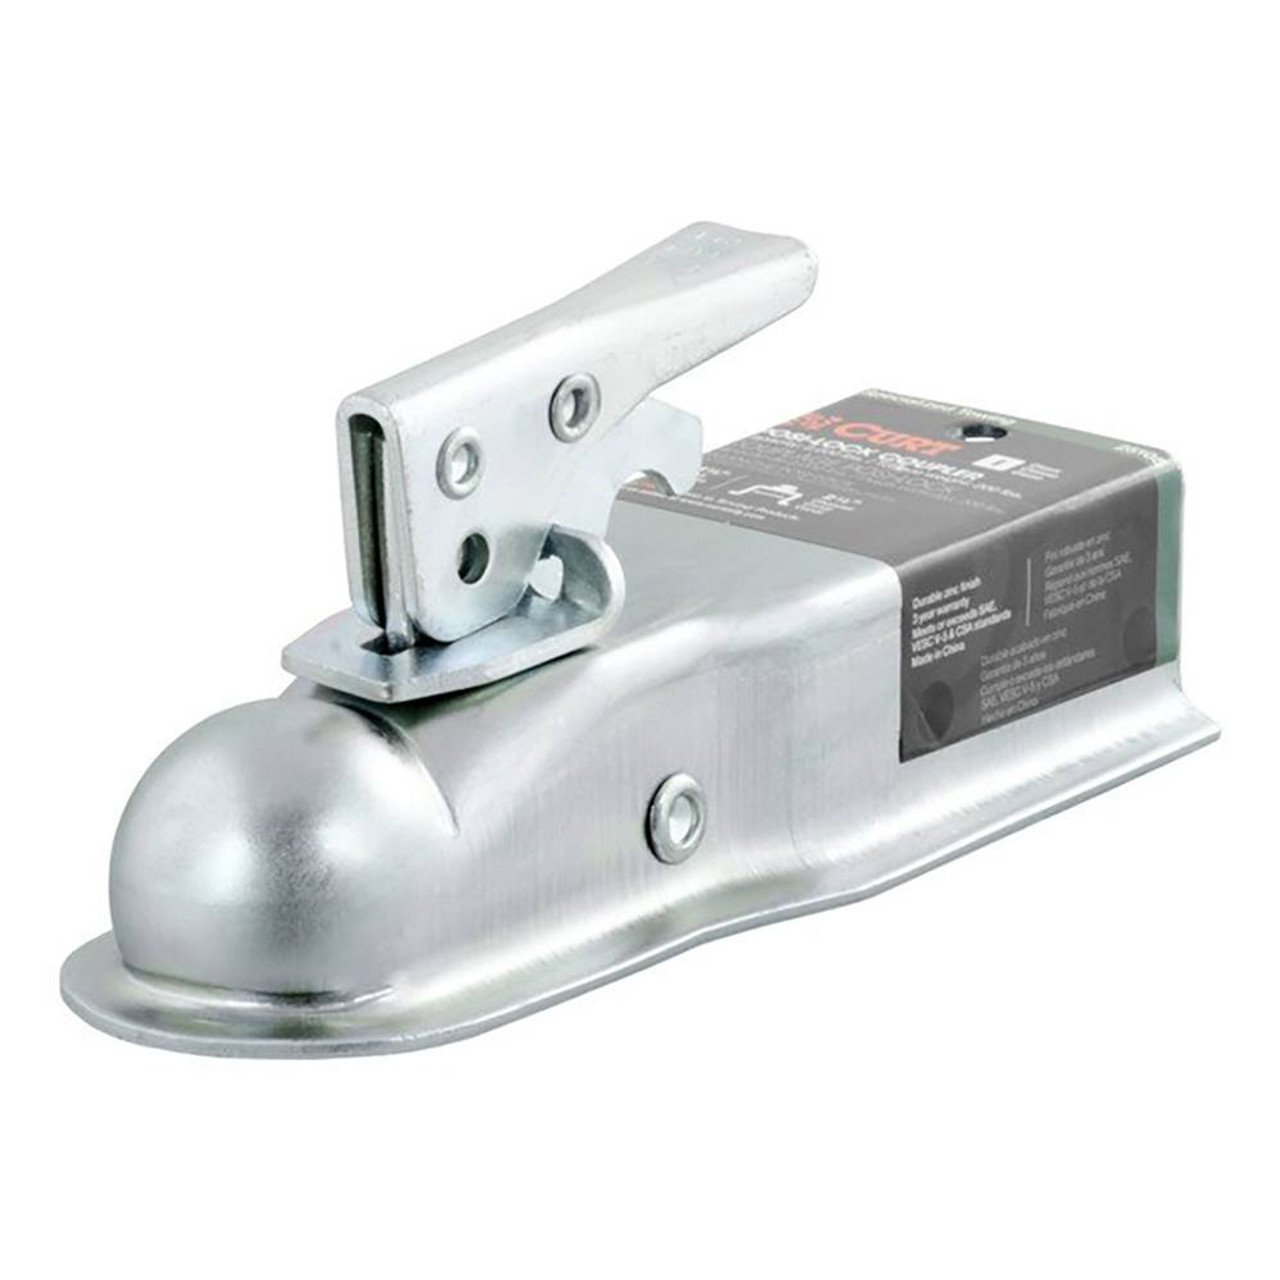 Class I- Posi-Lock Coupler- Zinc Finish- 2000lbs. Gross Trailer Weight- 200lbs. Tongue Weight- 1.7/8 in. Ball- 2.5 in. Channel-